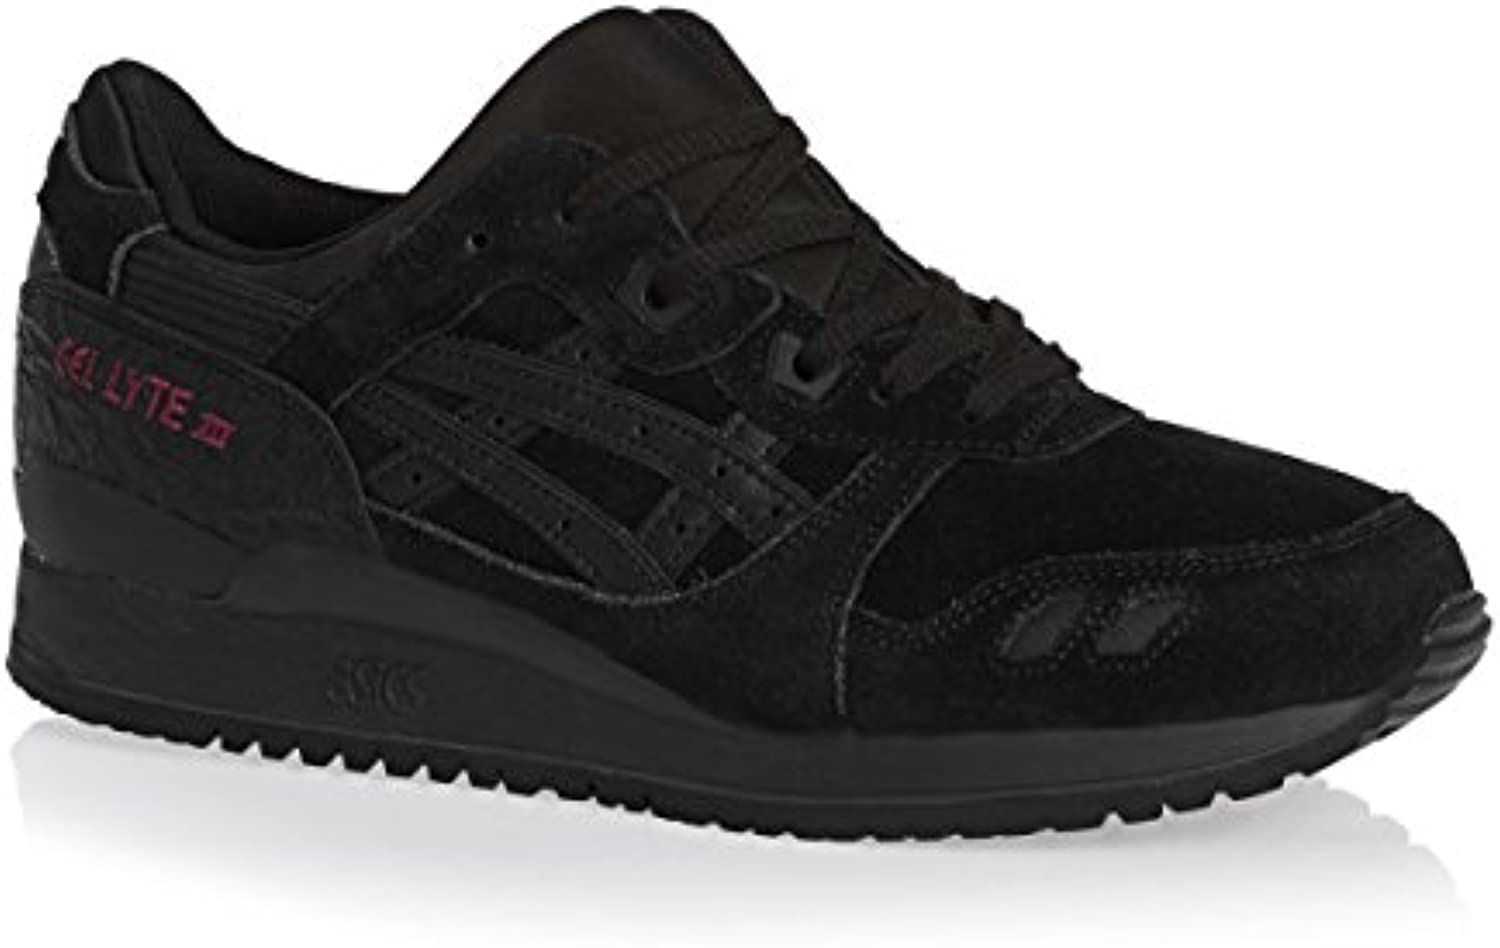 Asics - Gel Lyte III Limited Edition - Sneakers Unisex  -